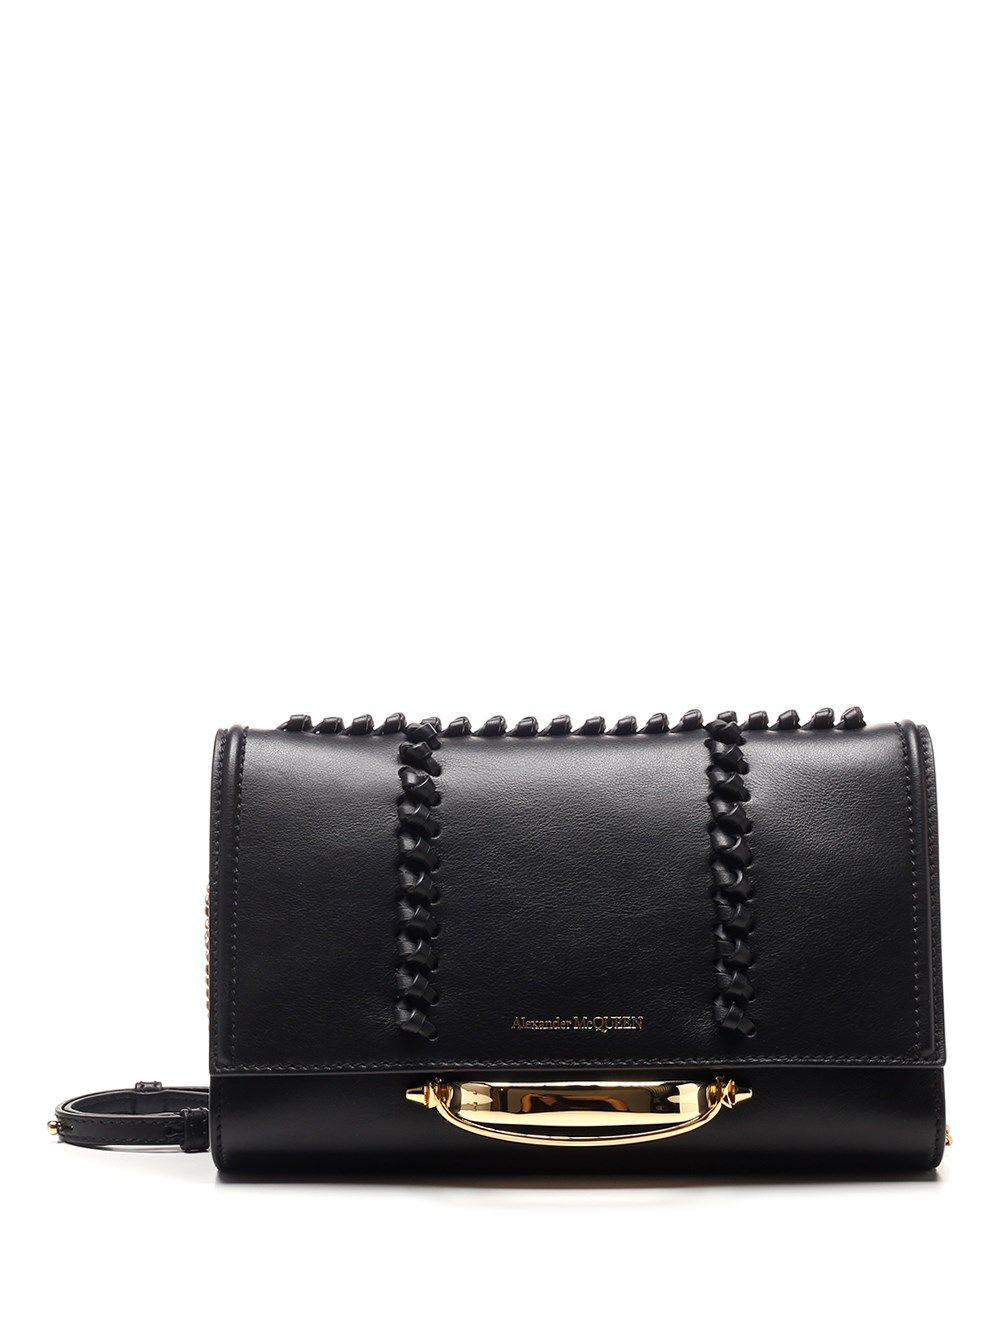 ALEXANDER MCQUEEN ALEXANDER MCQUEEN WOMEN'S 6530181LYA71000 BLACK OTHER MATERIALS SHOULDER BAG